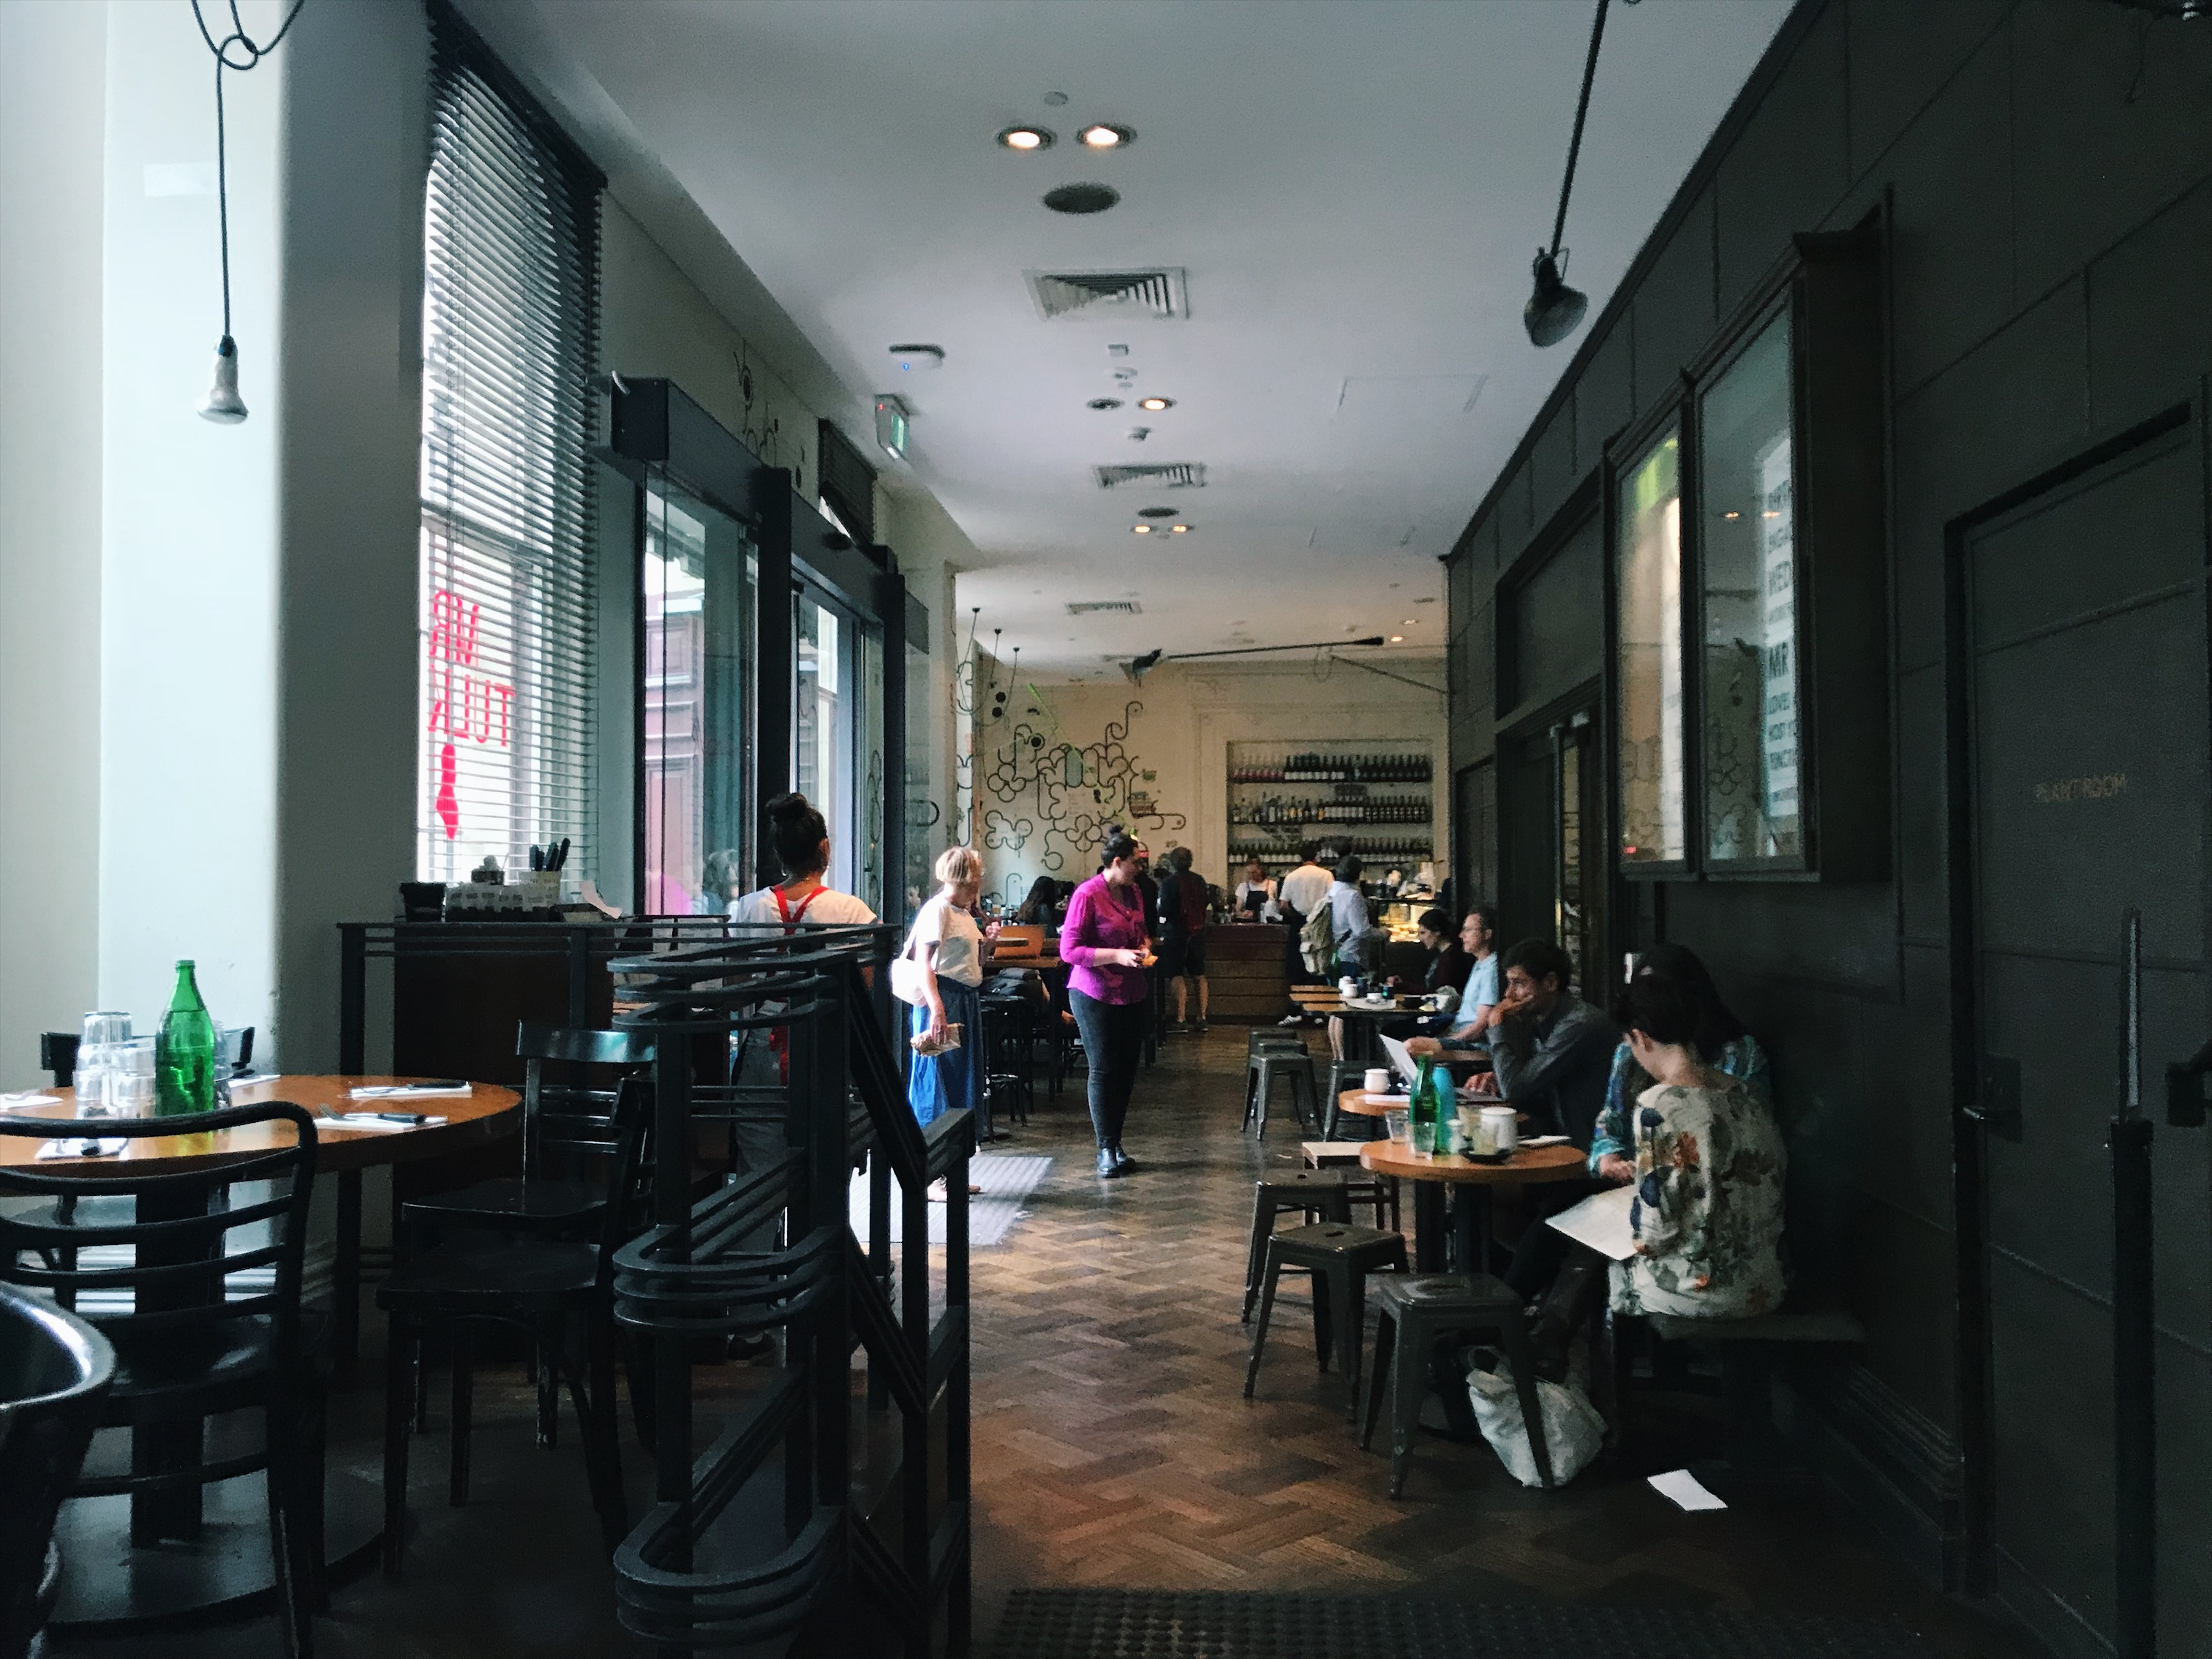 Melbourne: The Best Cafes For 20- Somethings